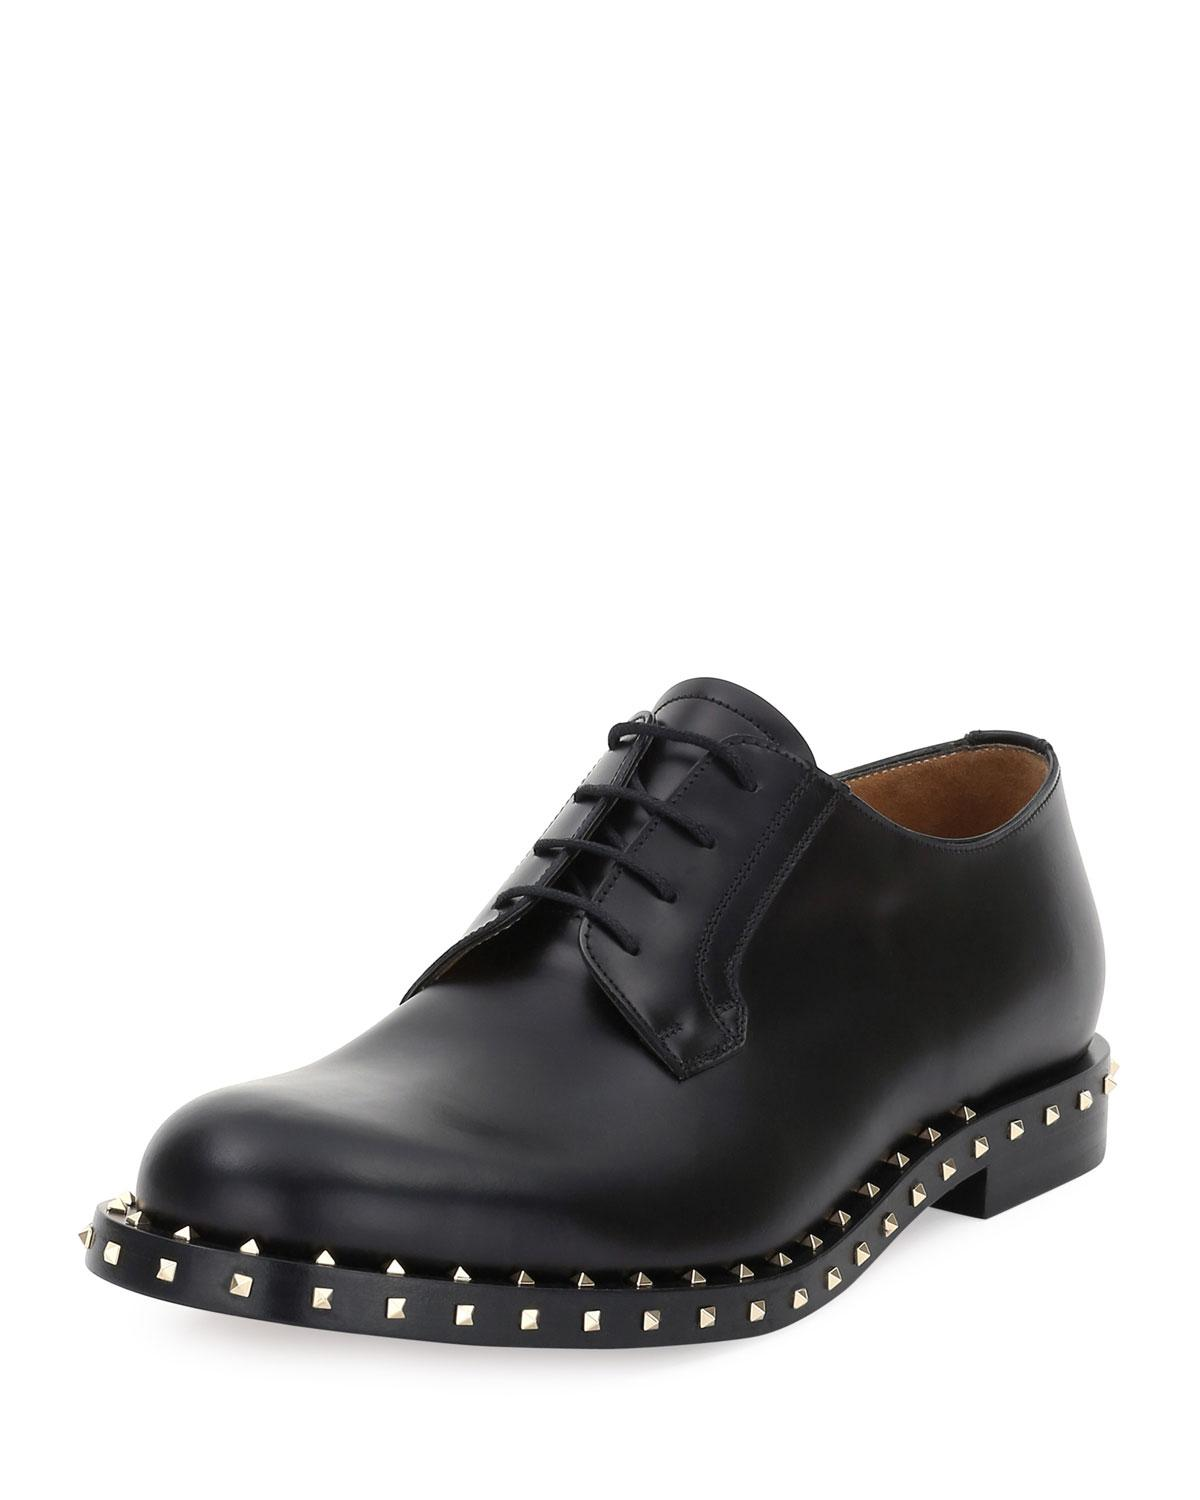 Find great deals on eBay for studded shoes men. Shop with confidence.